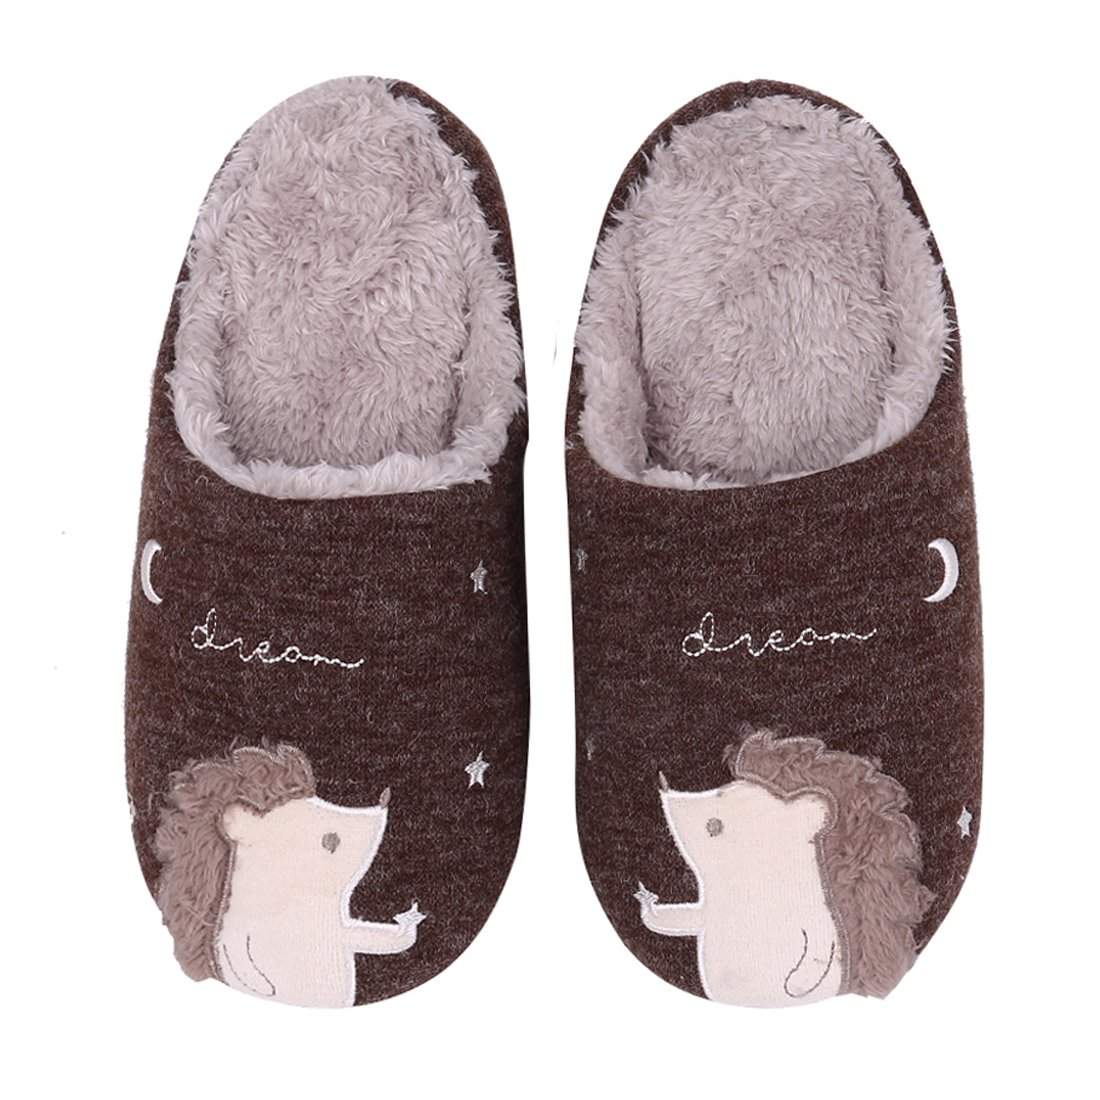 Animal House Slippers for Women Fuzzy Hedgehog Home Shoes Waterproof Sole Indoor Slippers